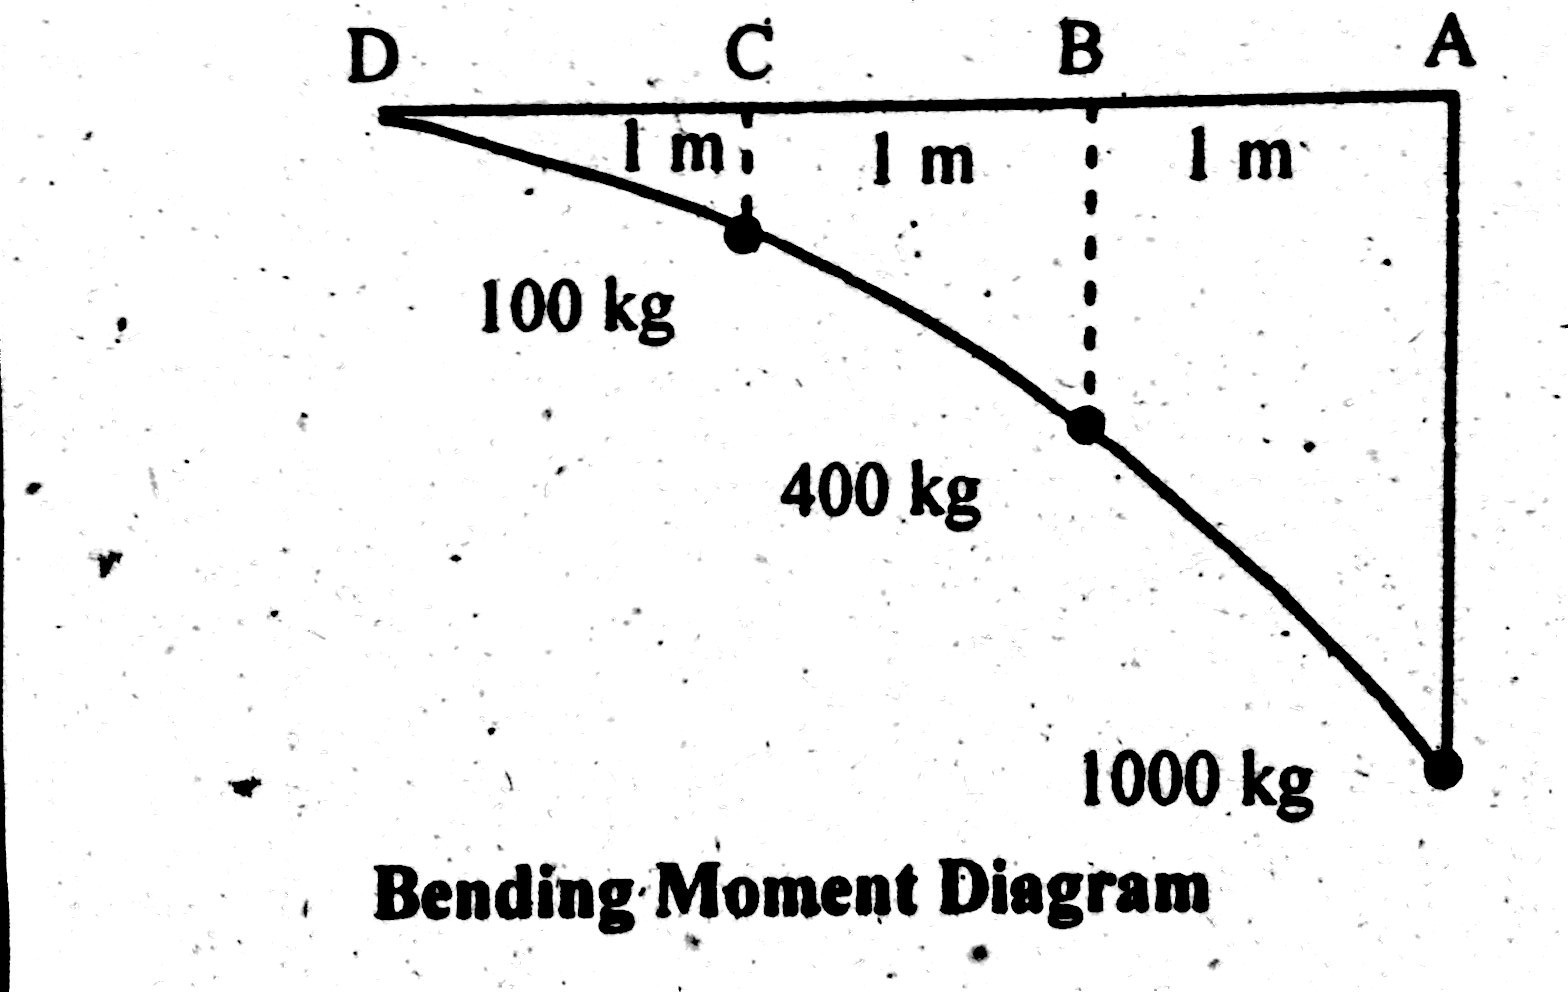 shear force bending moment diagram of cantilever beam examples rh engineeringintro com bending moment diagram cantilever retaining wall bending moment diagram cantilever beam udl point load